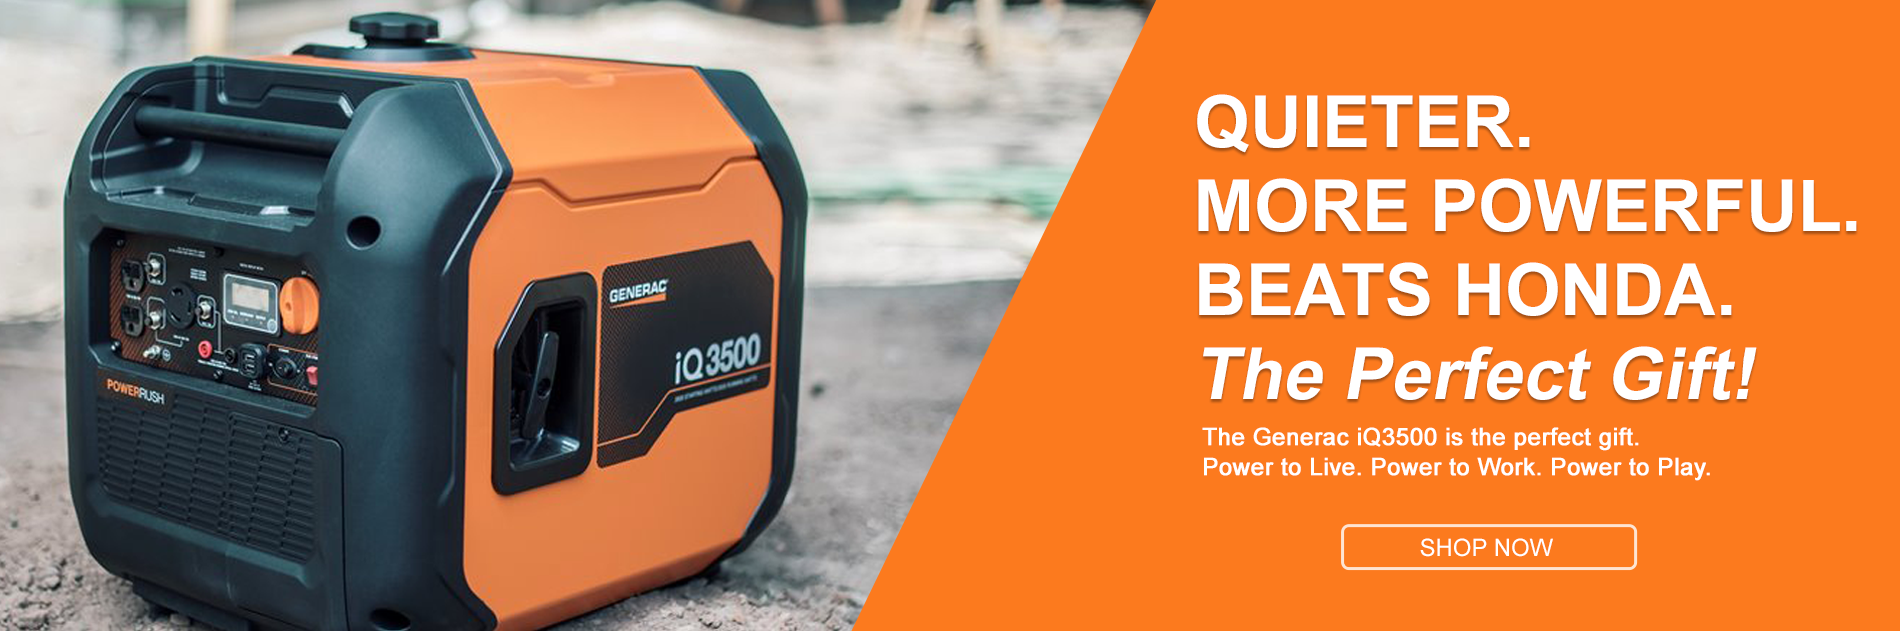 Quieter. More Powerful. Beats Honda. The Generac iq3500 is the perfect gift.